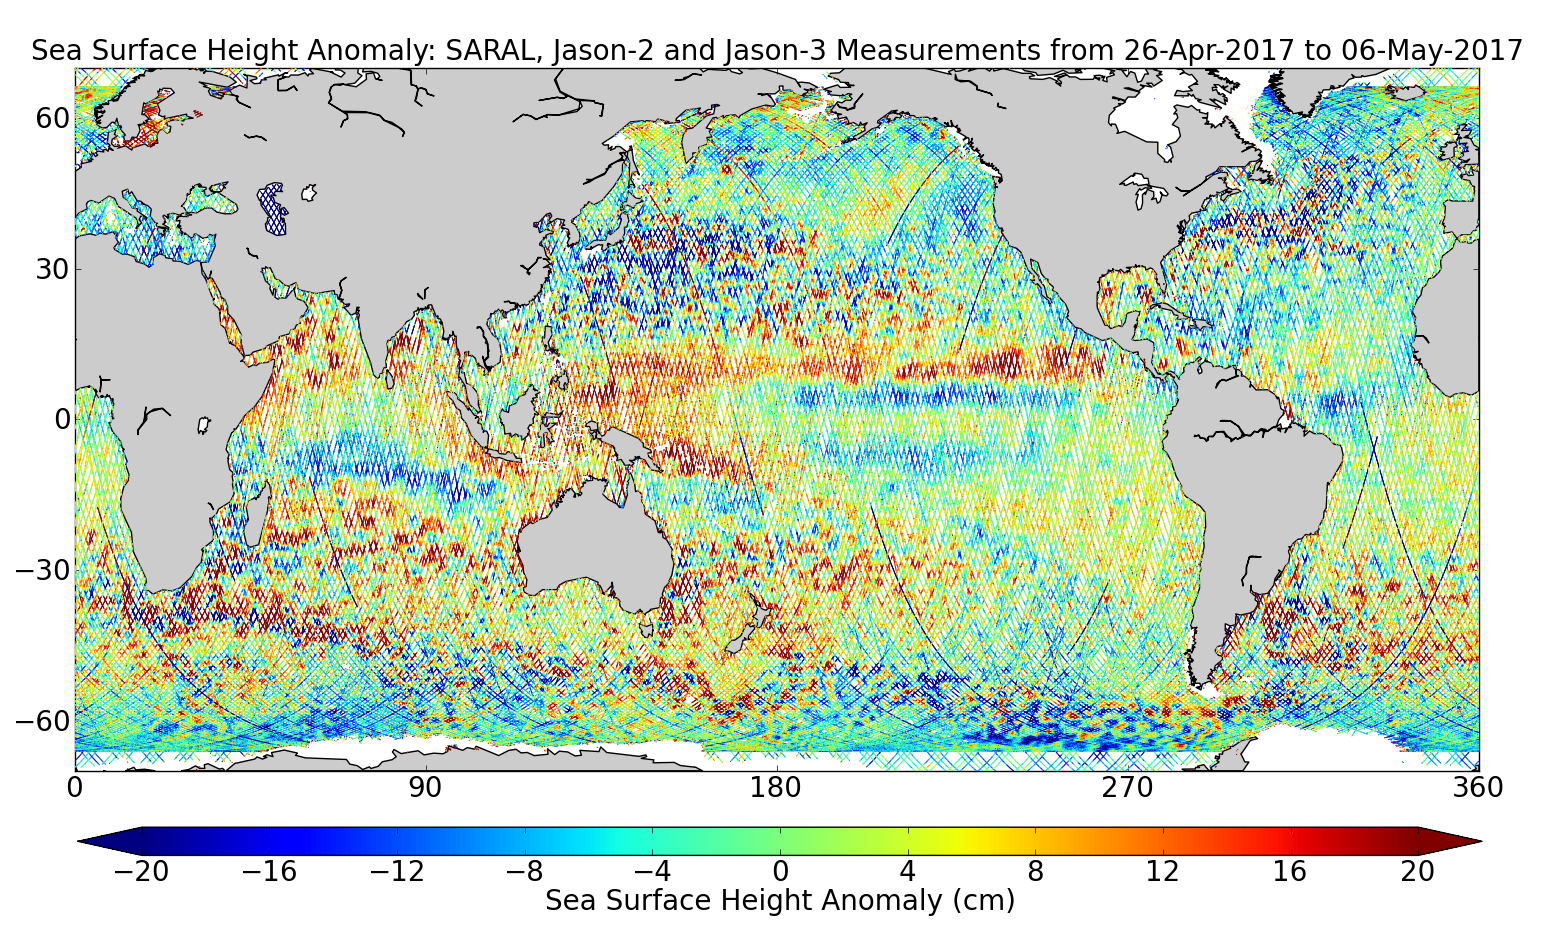 Sea Surface Height Anomaly: SARAL, Jason-2 and Jason-3 Measurements from 26-Apr-2017 to 06-May-2017